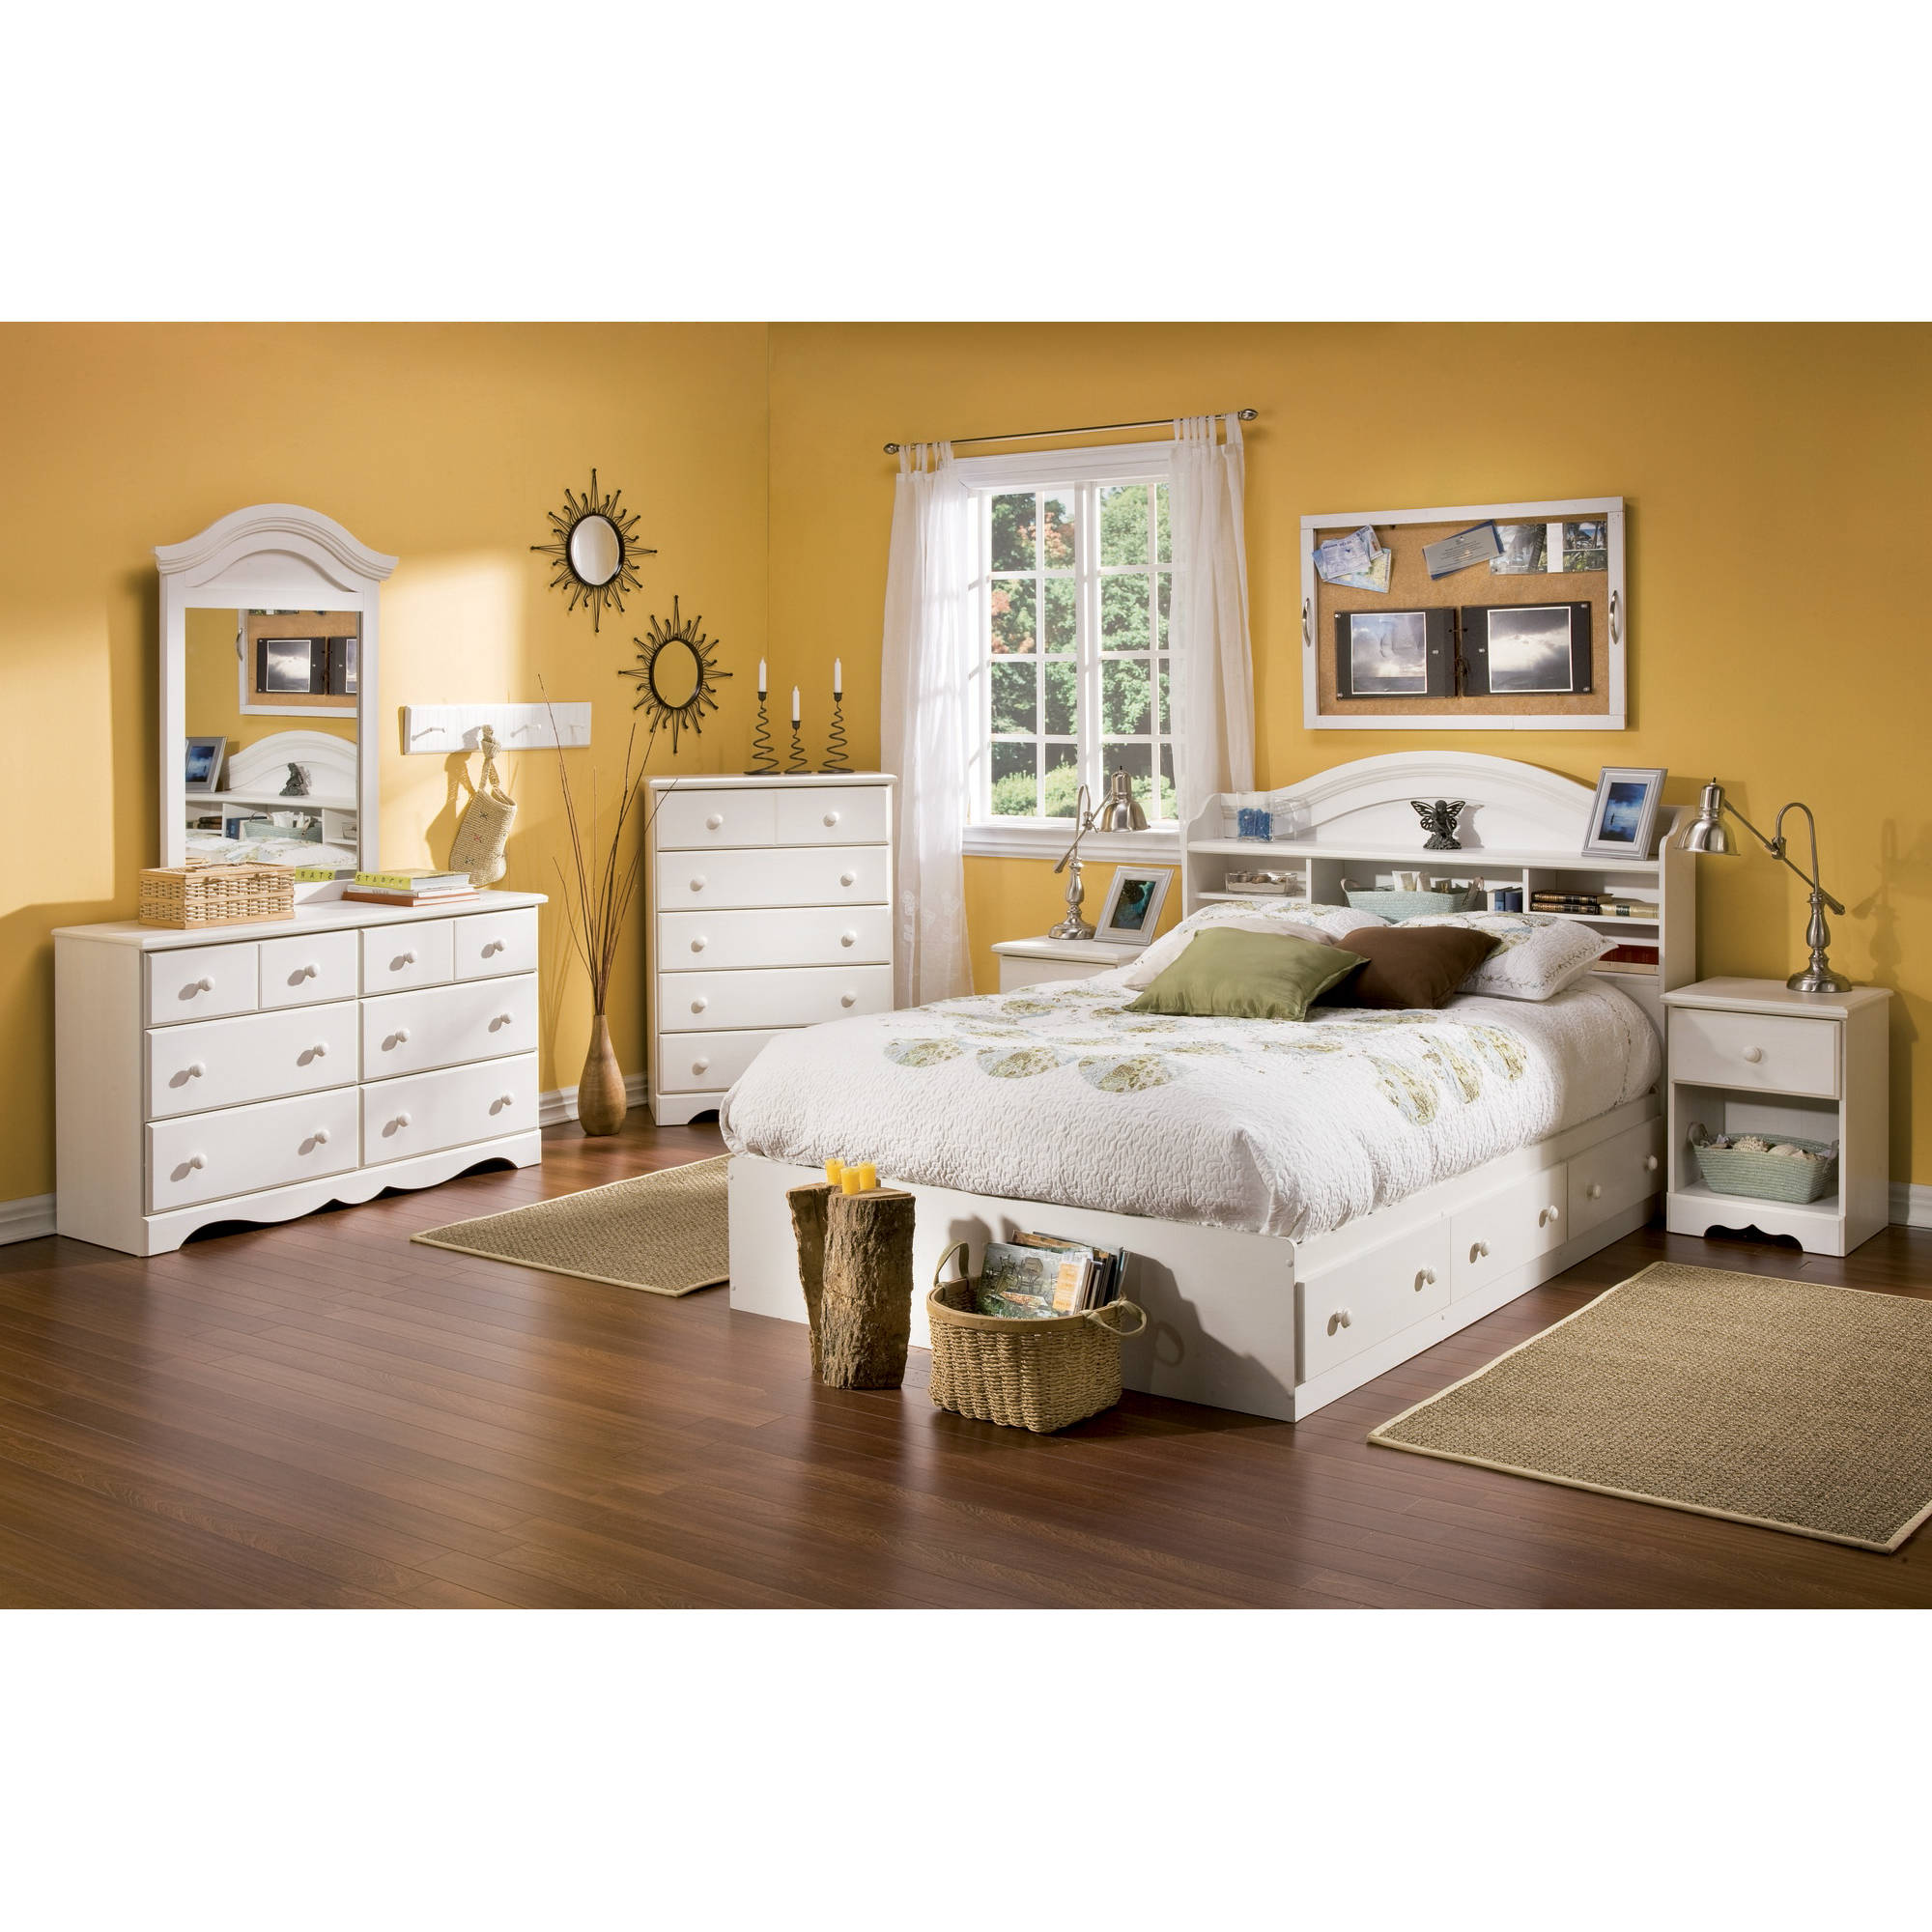 White Bedroom Sets Full kids' bedroom sets - walmart